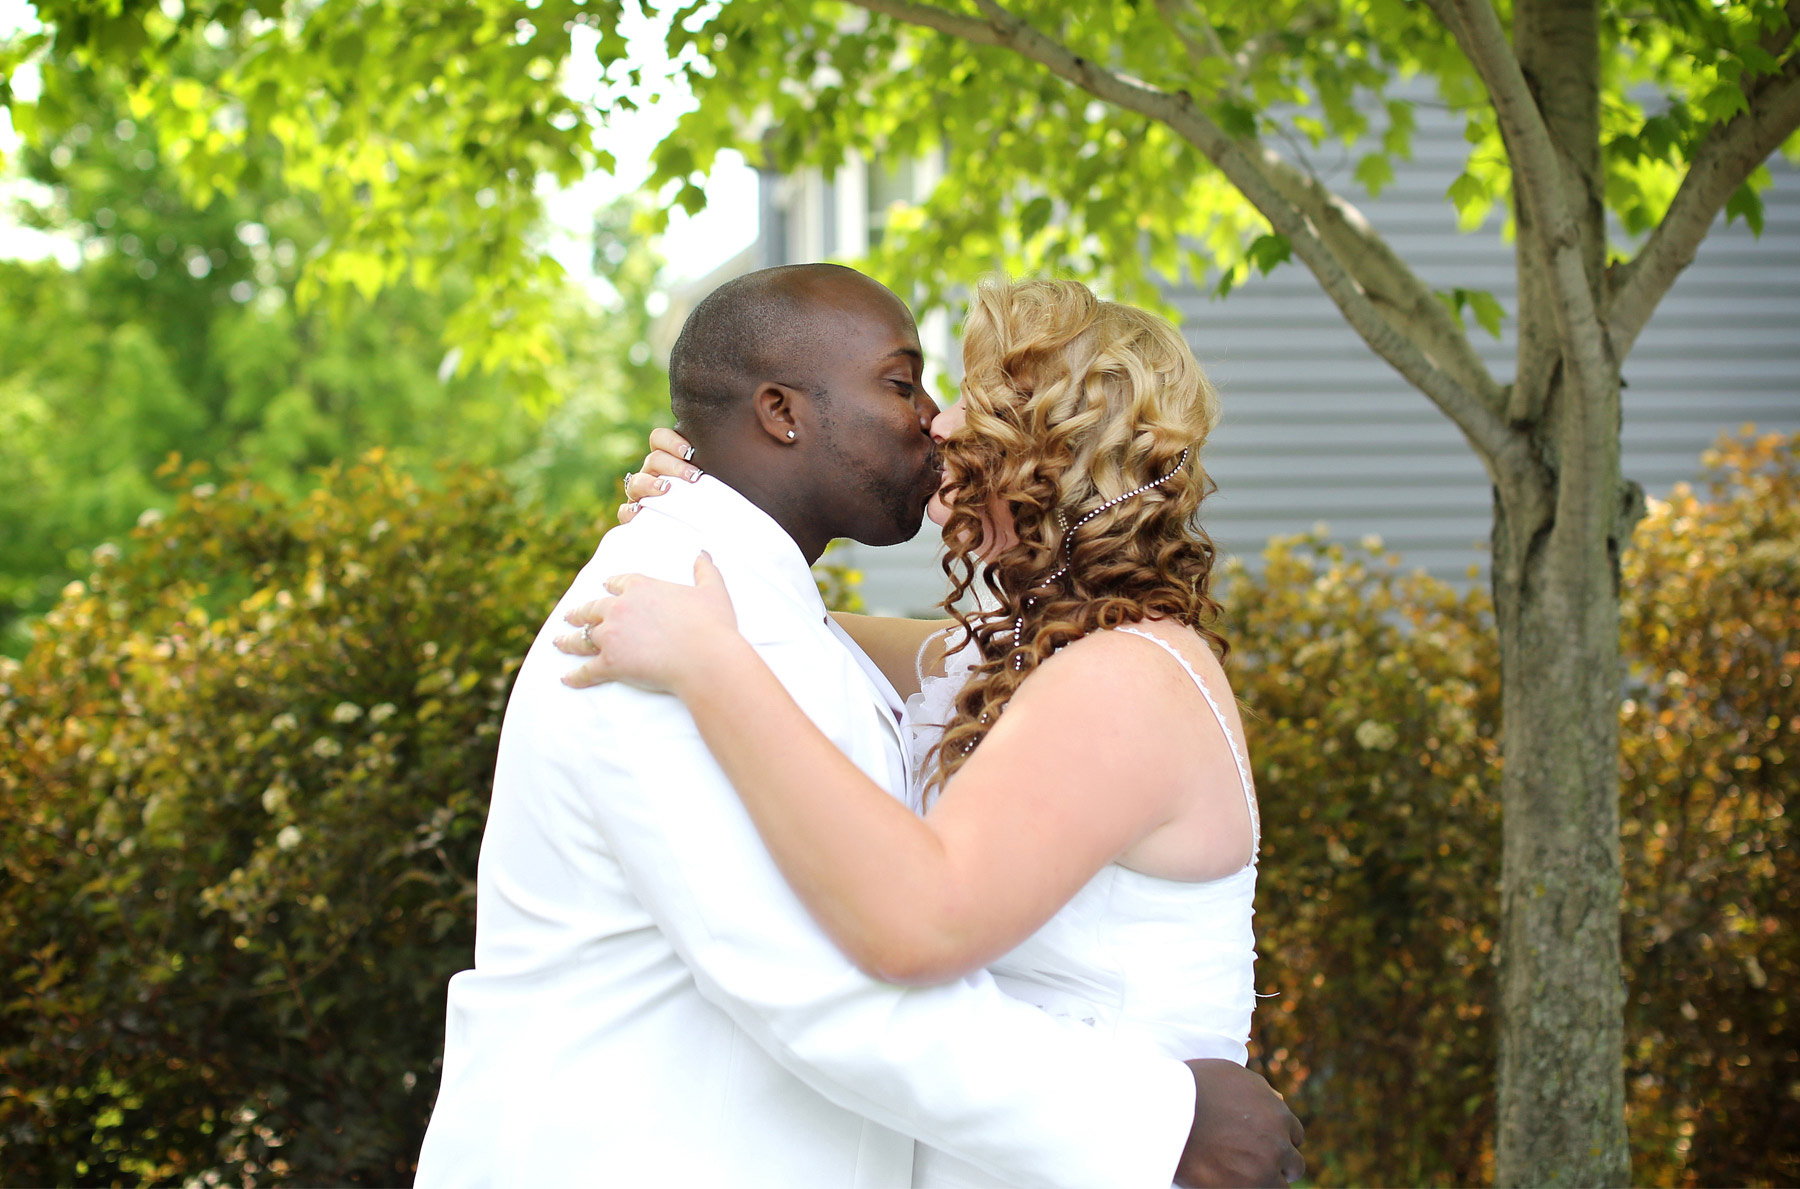 04-Minneapolis-Minnesota-Wedding-Photography-by-Vick-Photography-at-Plymouth-Creek-Center-First-Look-Emily-&-Lonnie.jpg